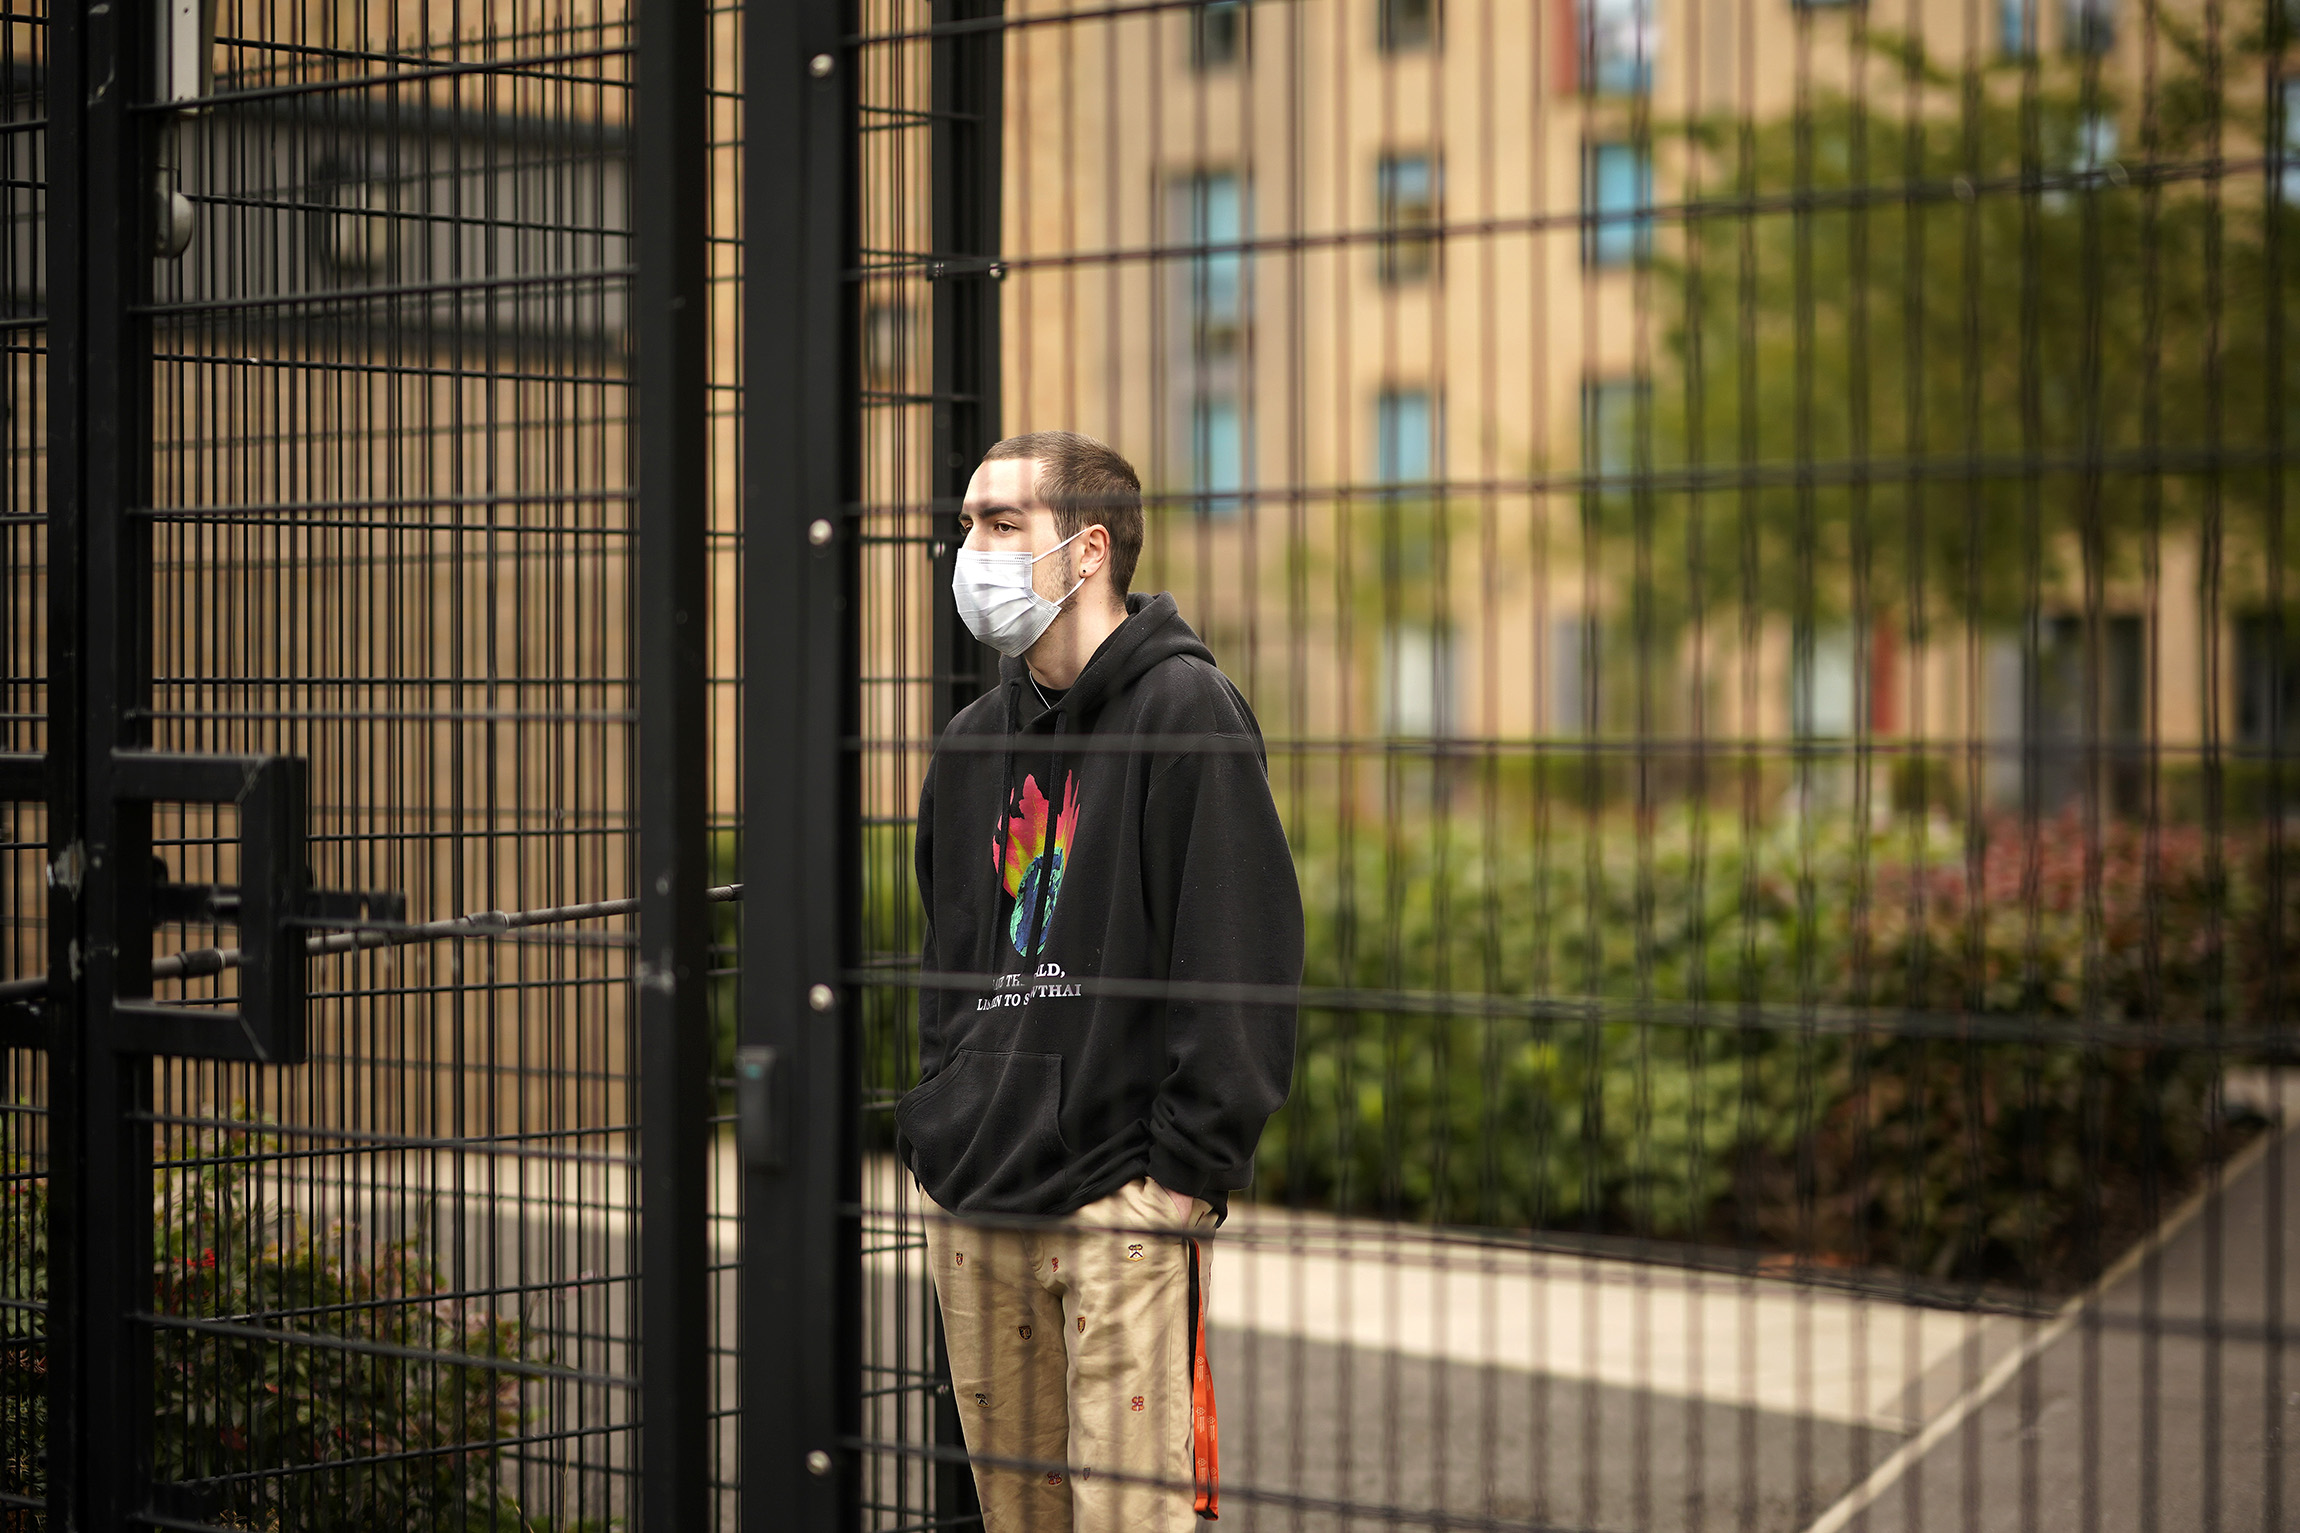 Students who are self-isolating stand behind security fencing as they are interviewed by a television crew on September 28, in Manchester, England.